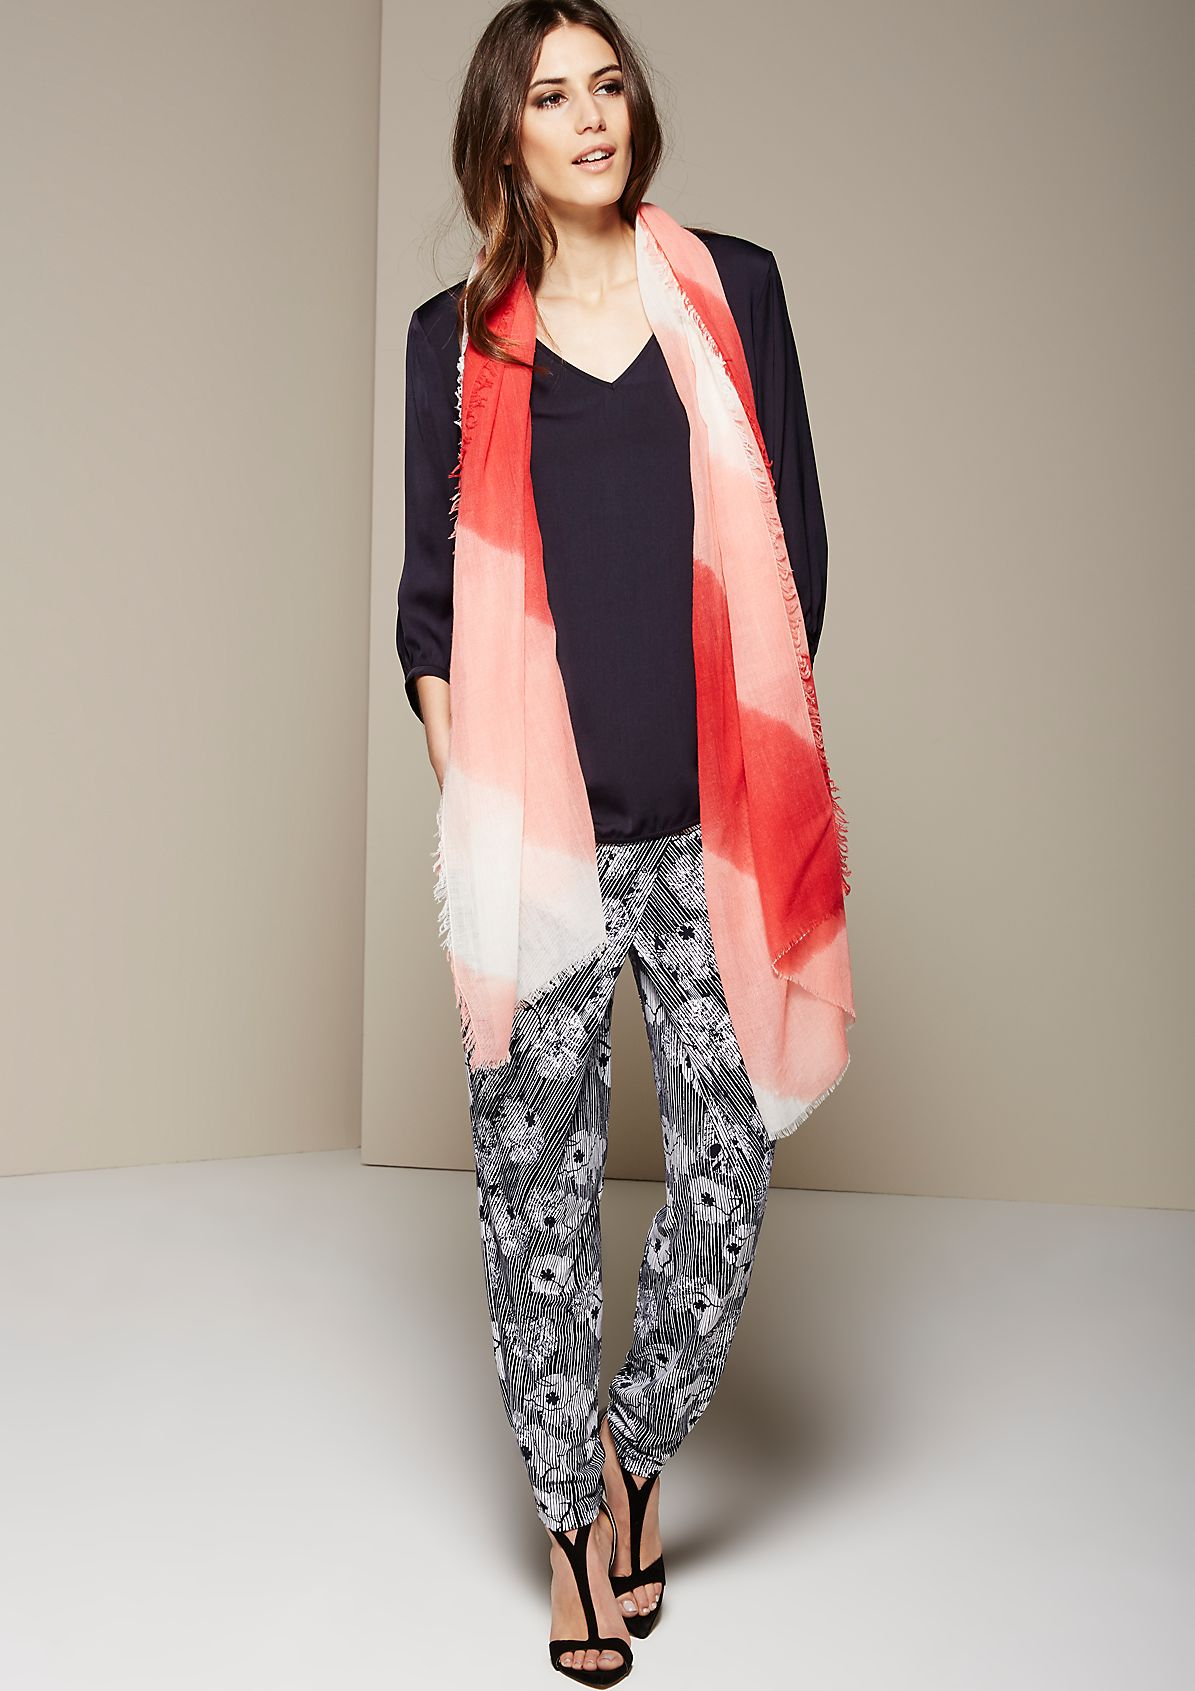 Summery scarf with a beautiful striped pattern from s.Oliver